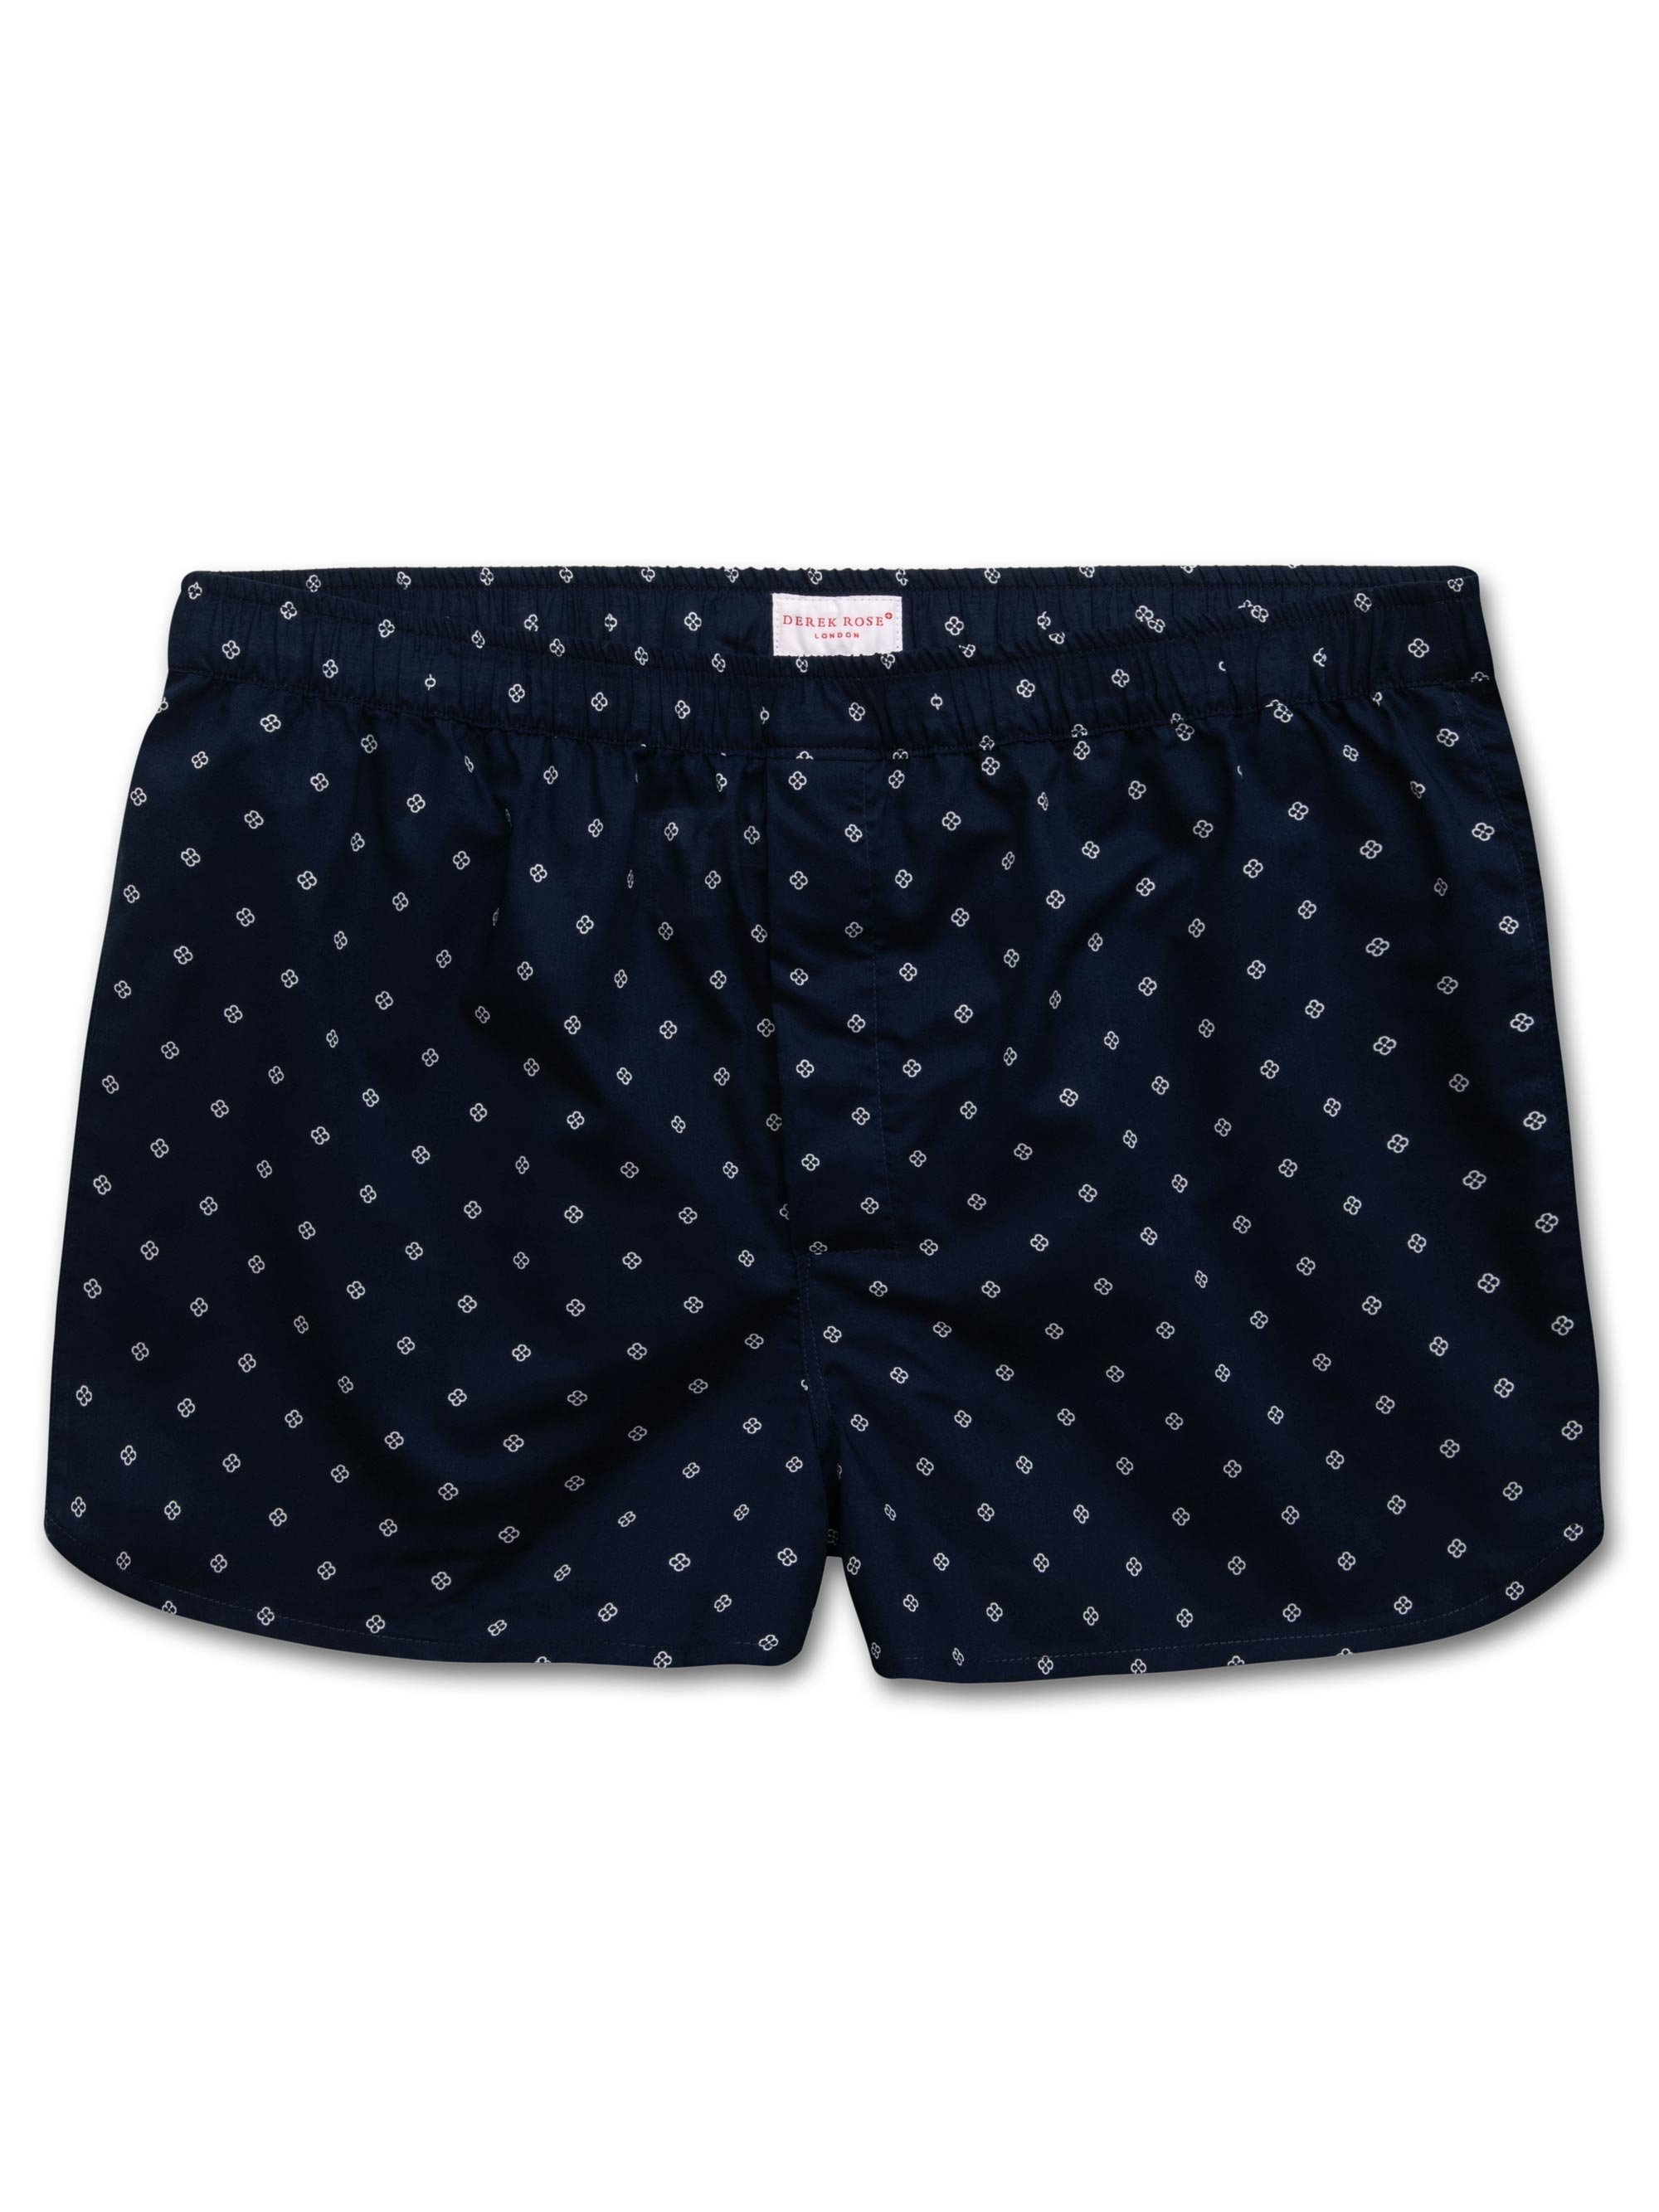 Men's Modern Fit Boxer Shorts Nelson 71 Cotton Batiste Navy